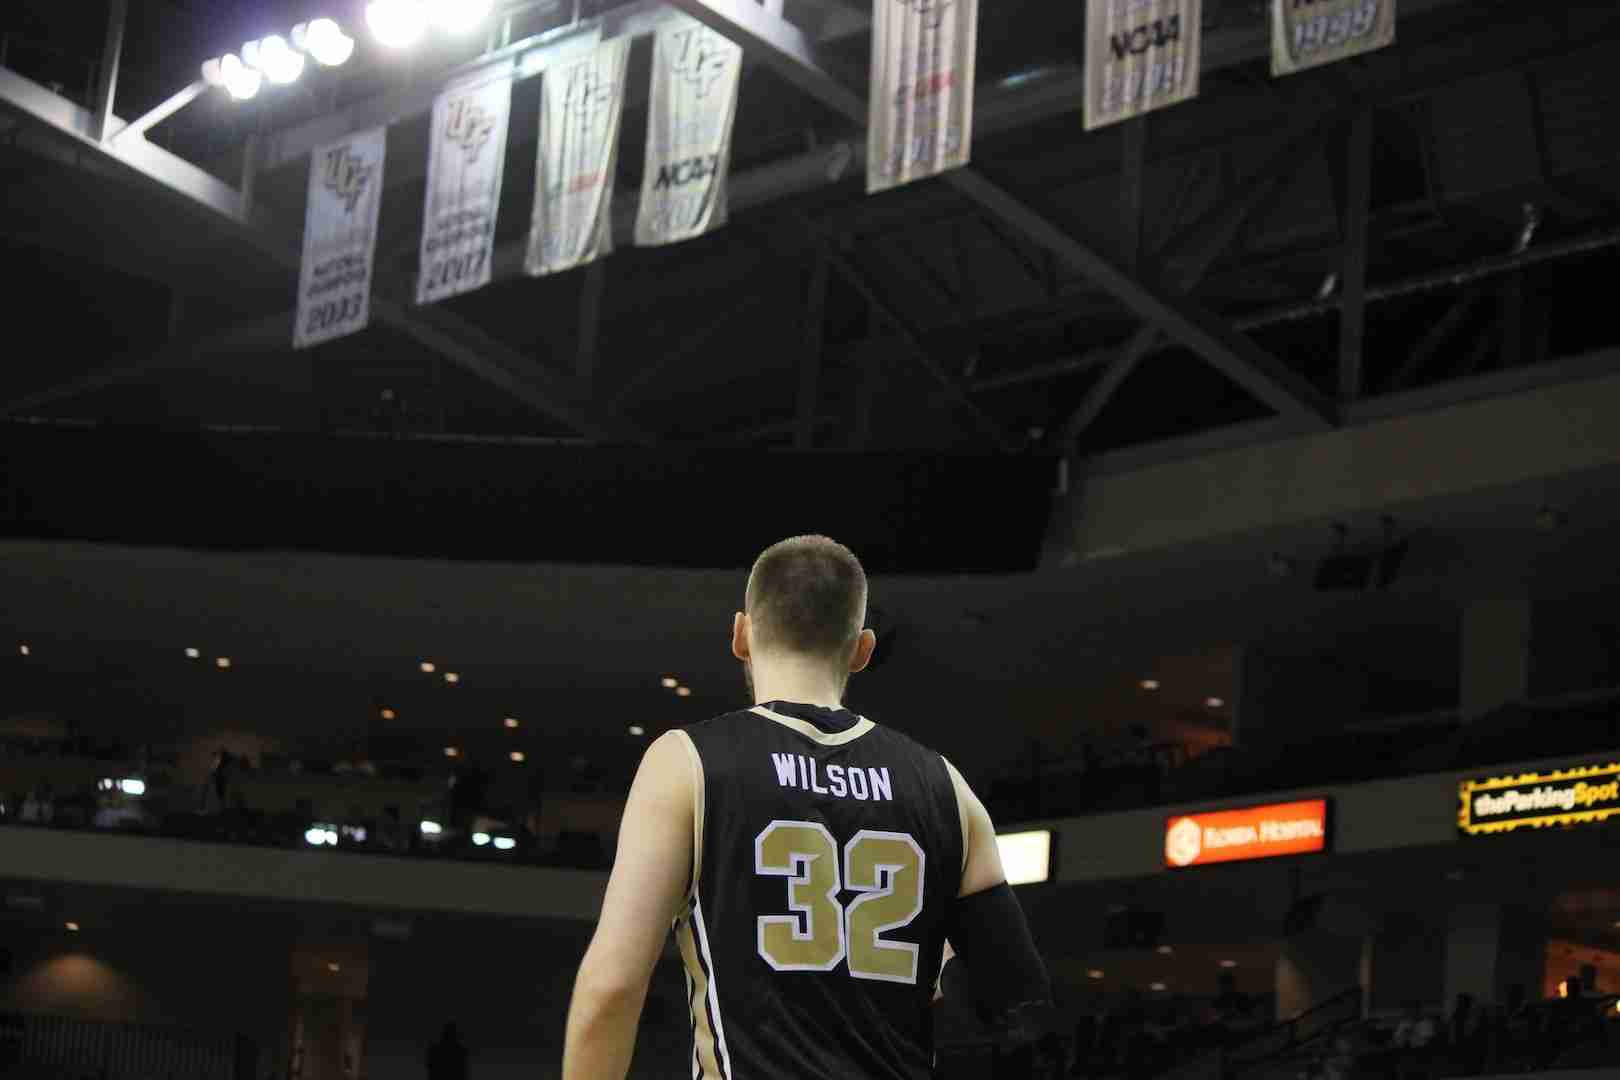 Senior+forward+Kasey+Wilson+played+in+his+final+game+at+CFE+Arena+on+Saturday+against+ECU